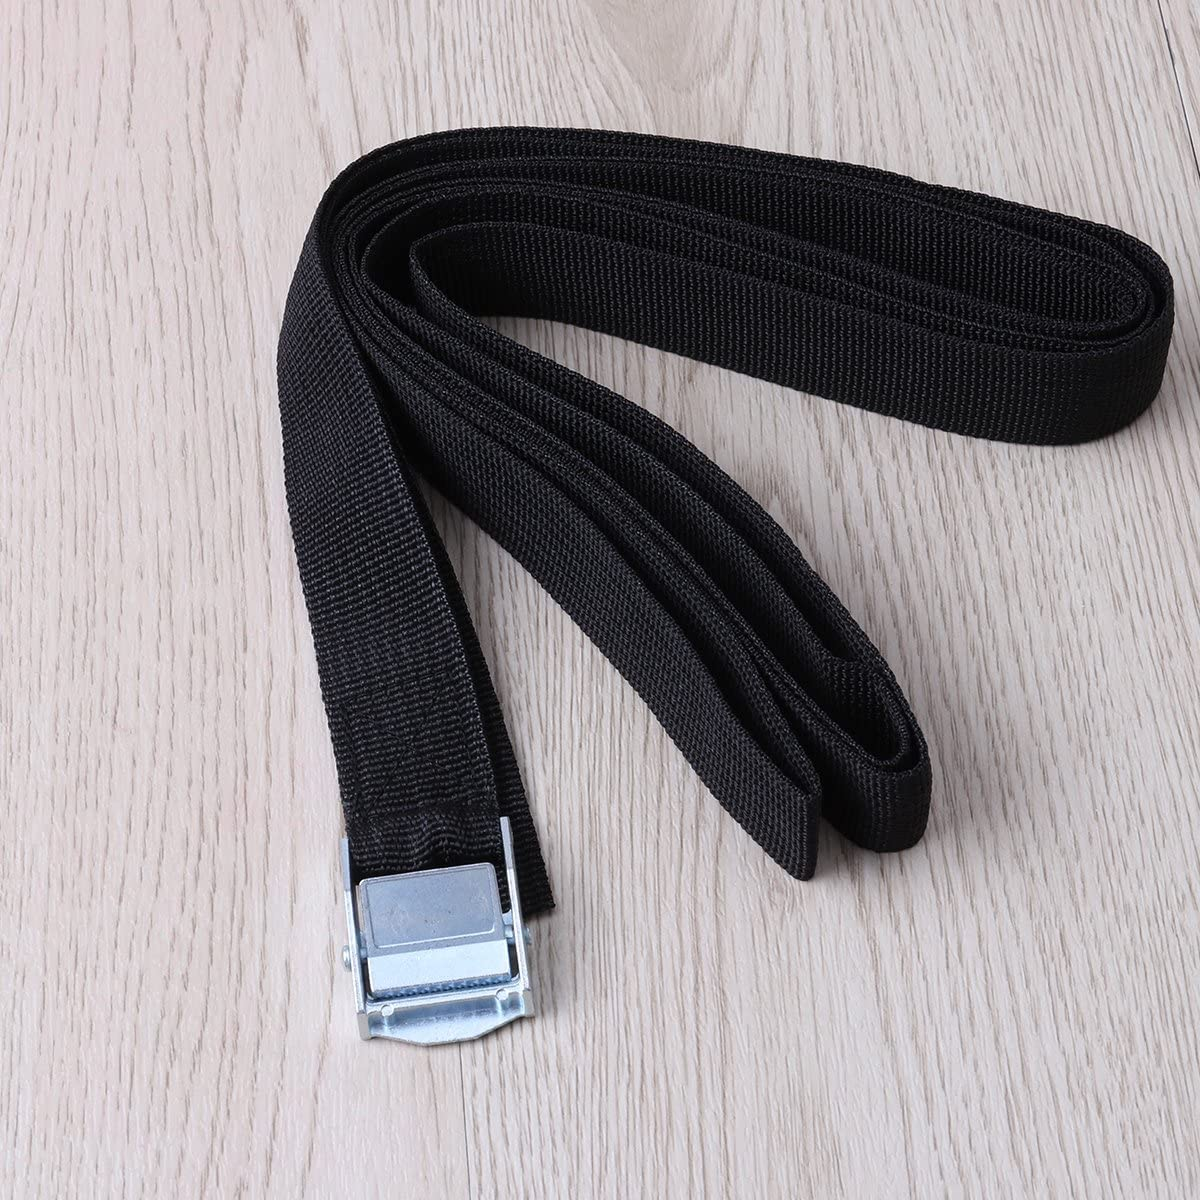 Black VORCOOL 6/Tie-Down Straps Lashing Straps with Clamp Lock for Car Vehicle